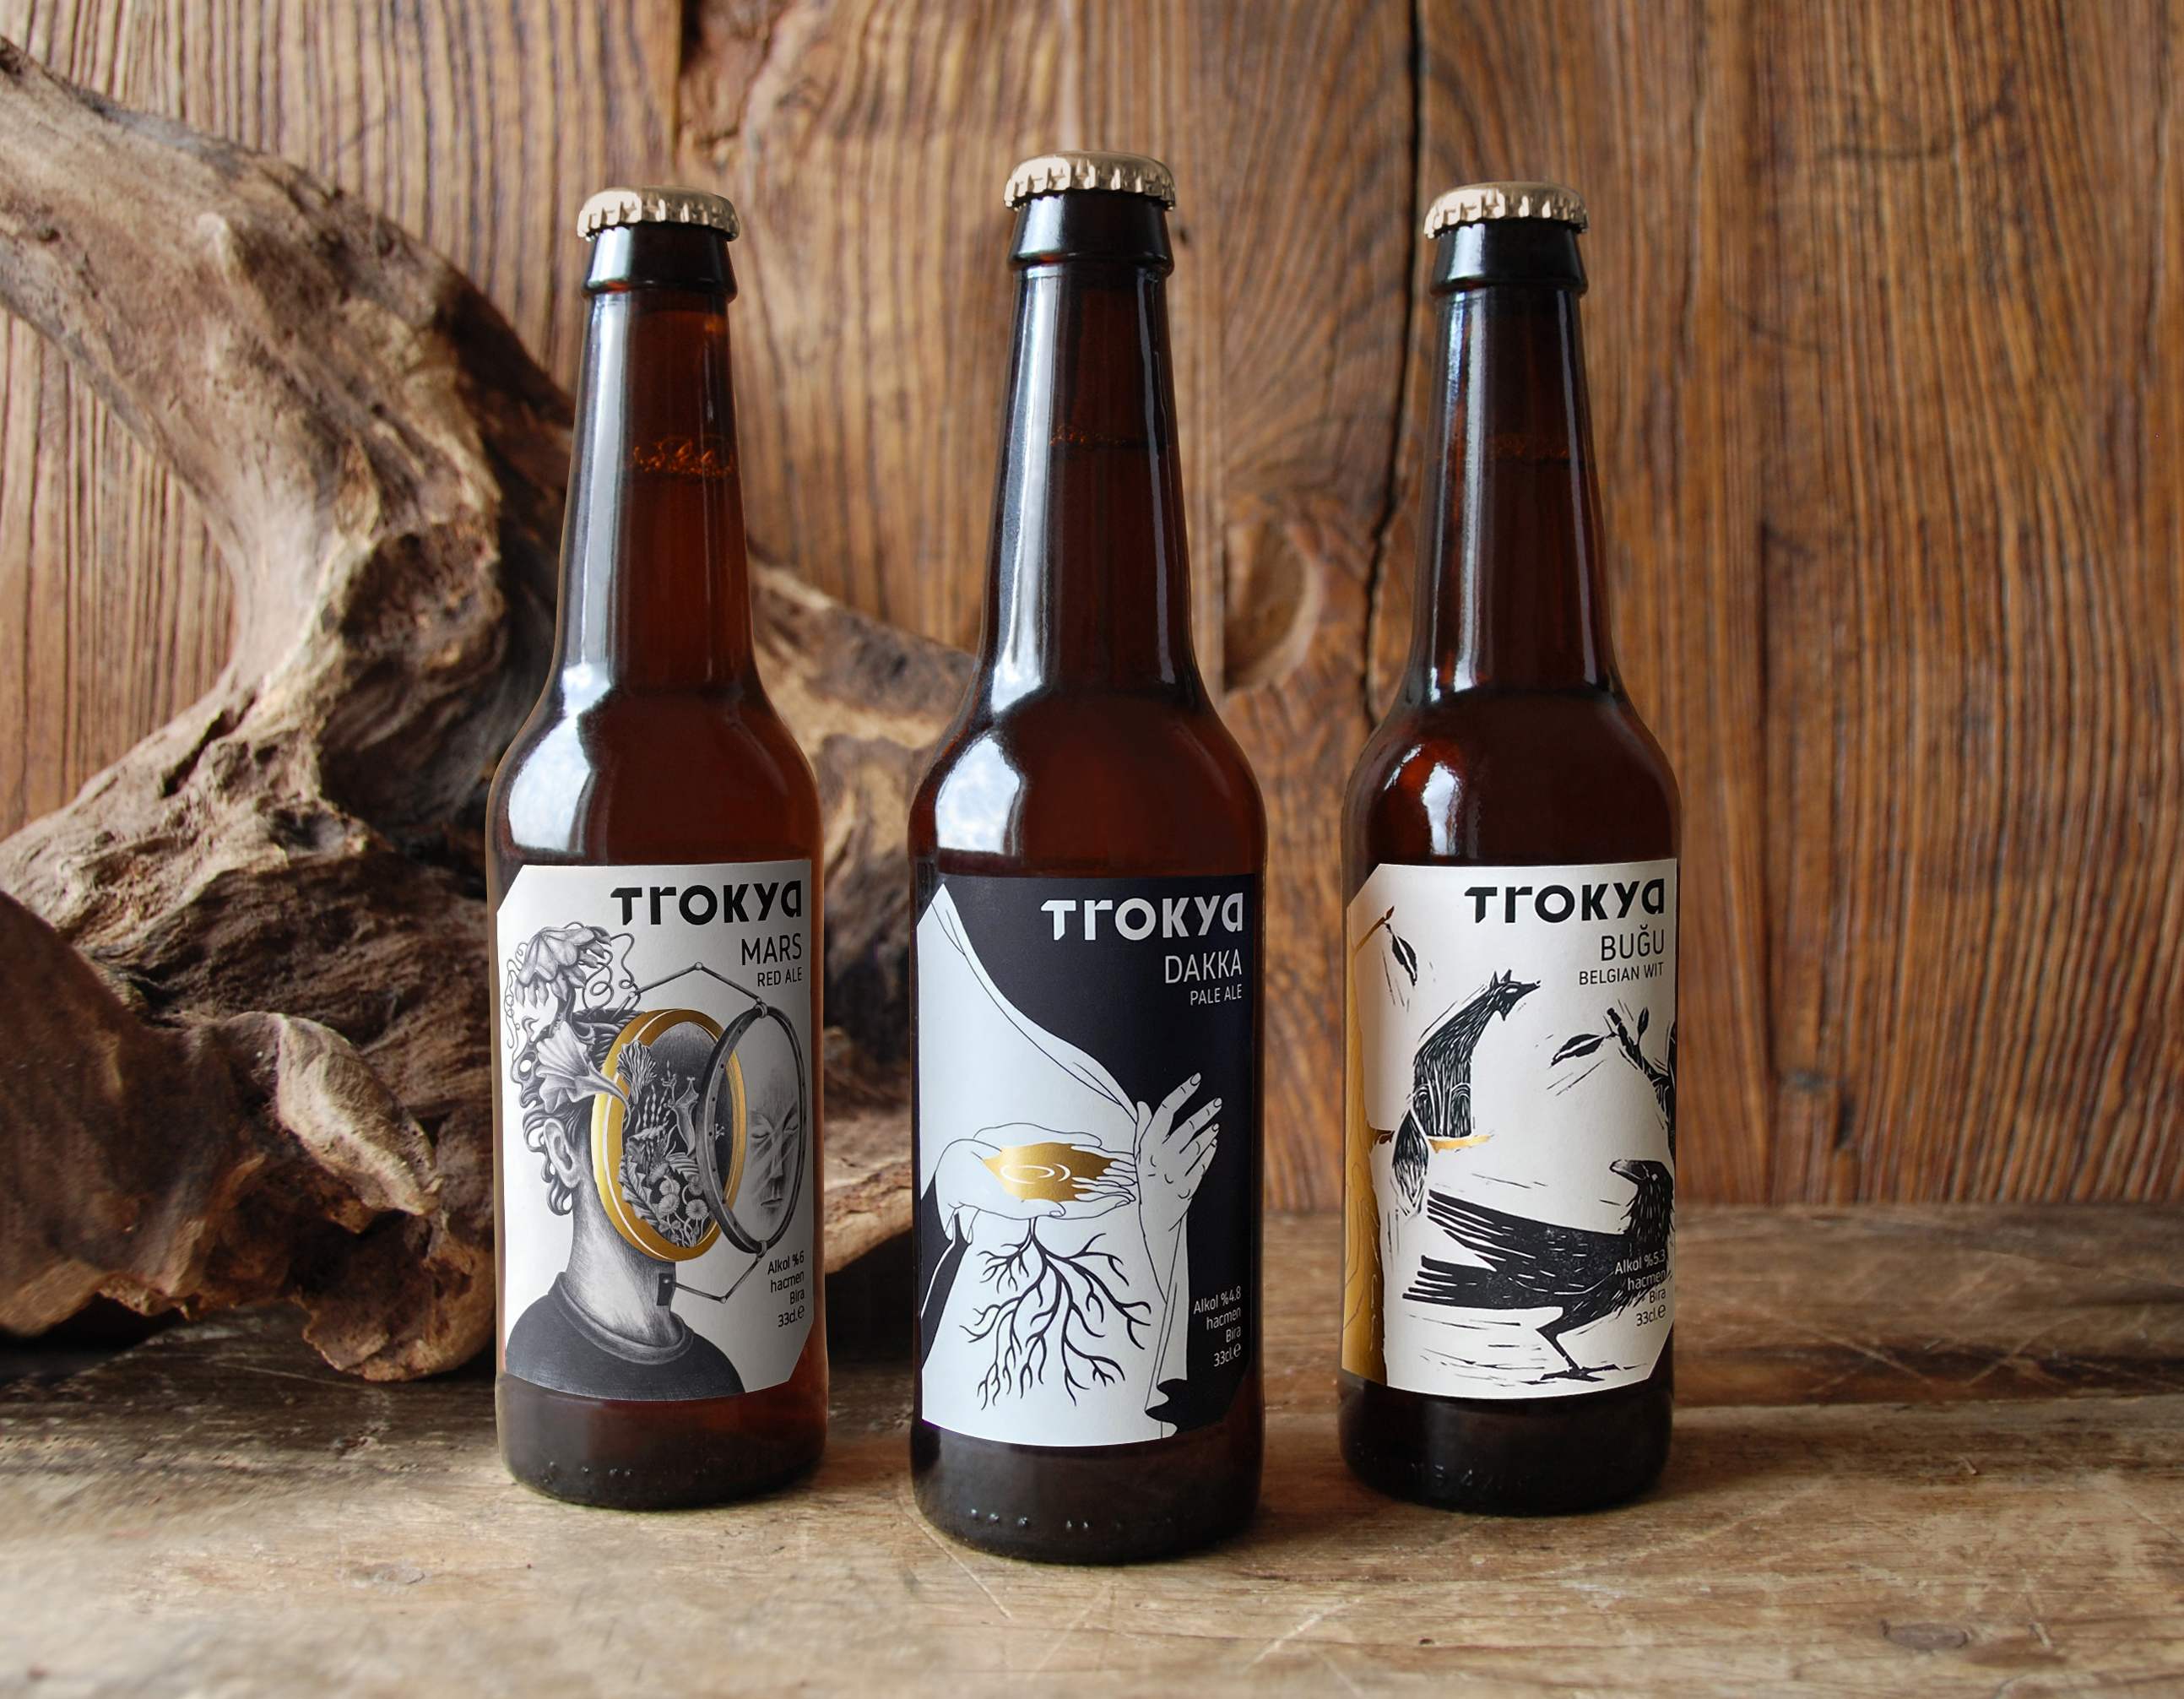 Trokya Beer Packaging and Brand Identity by Pata Studio